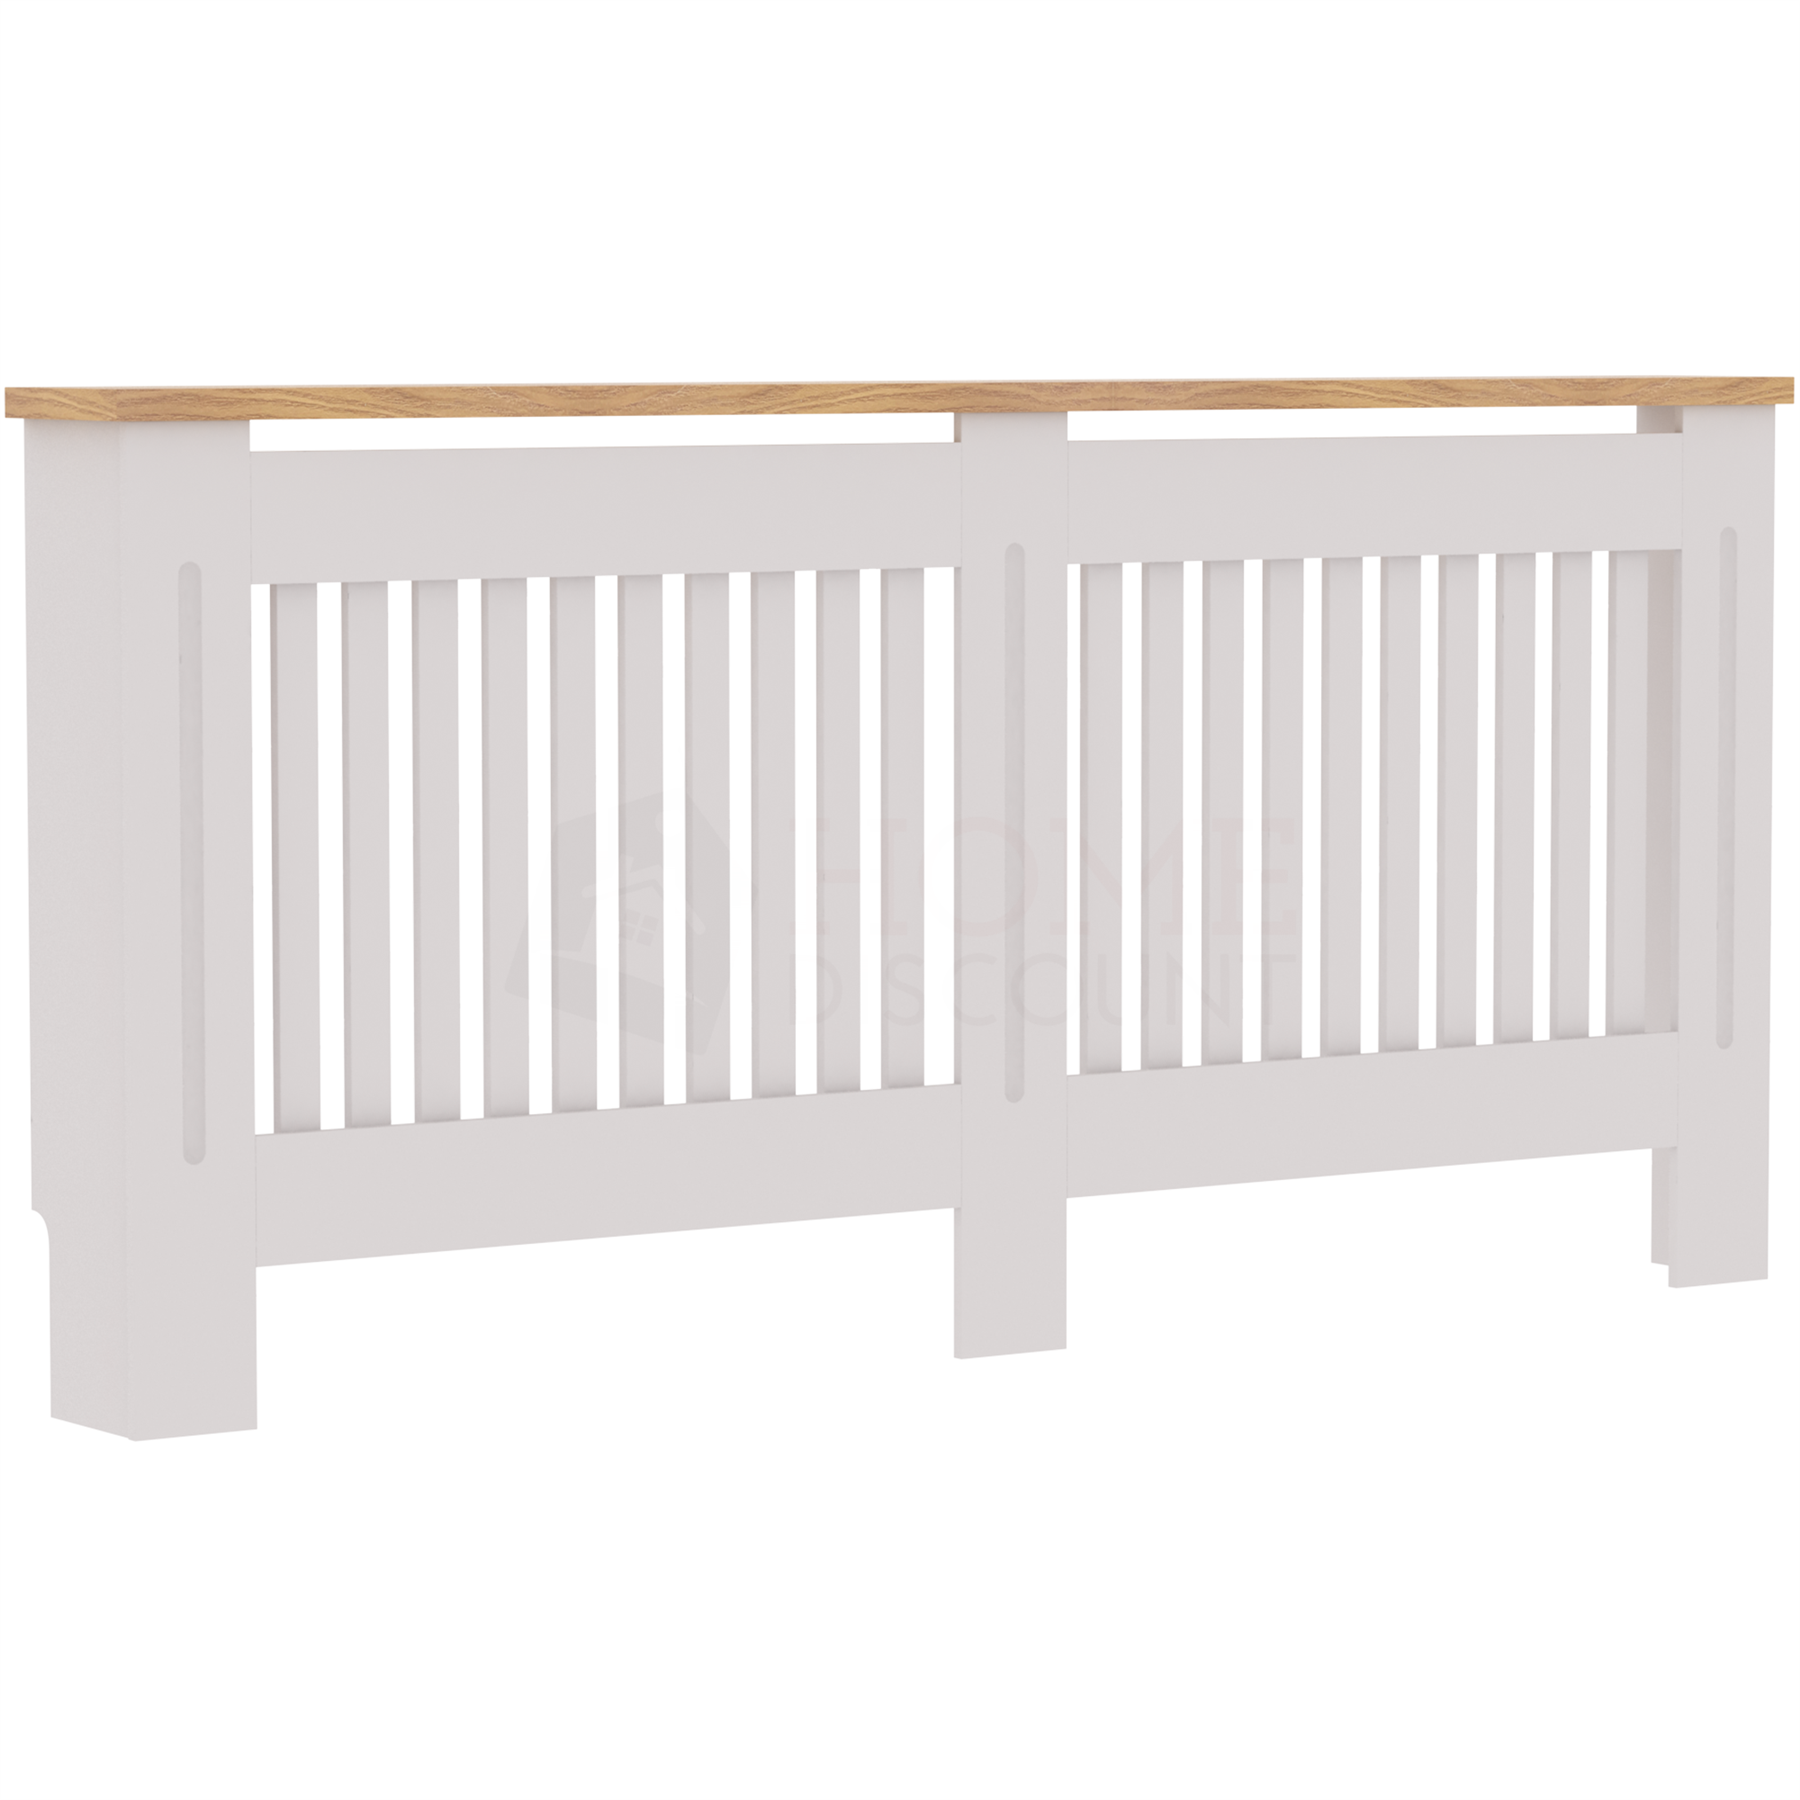 Radiateur-Housse-Blanc-inachevee-MODERNE-BOIS-TRADITIONNELLE-Grill-cabinet-furniture miniature 33